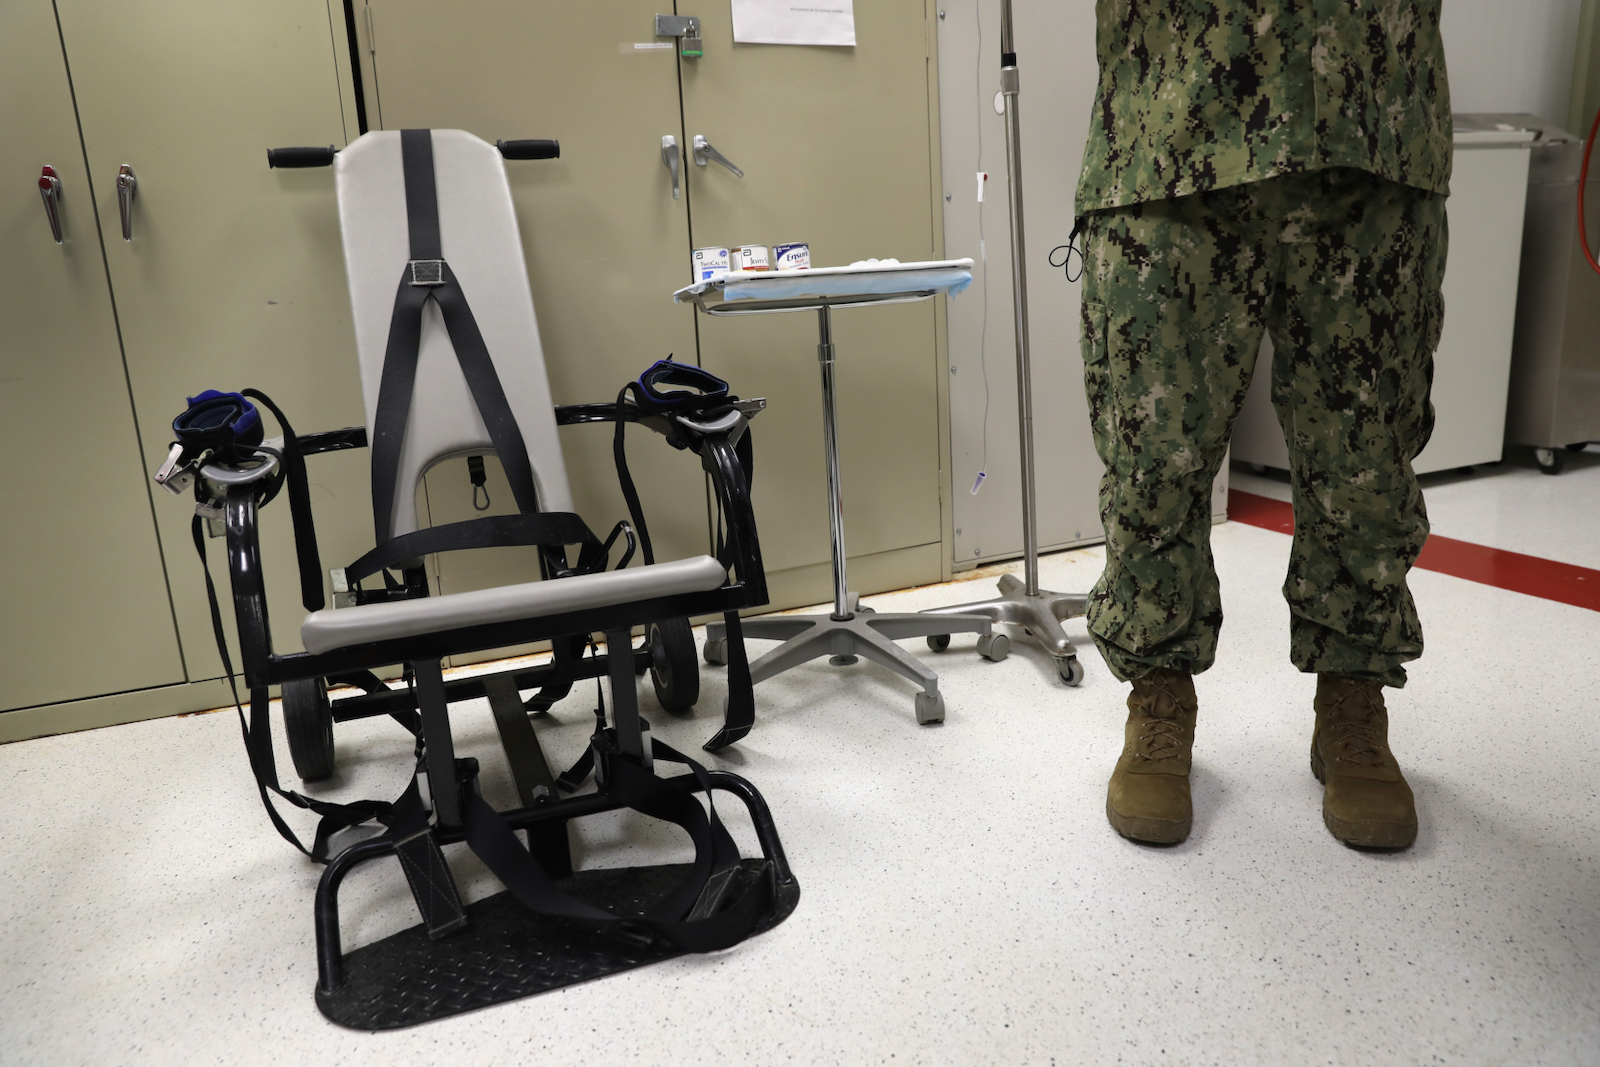 A US Navy doctor with a restraint chair used to force-feed detainees